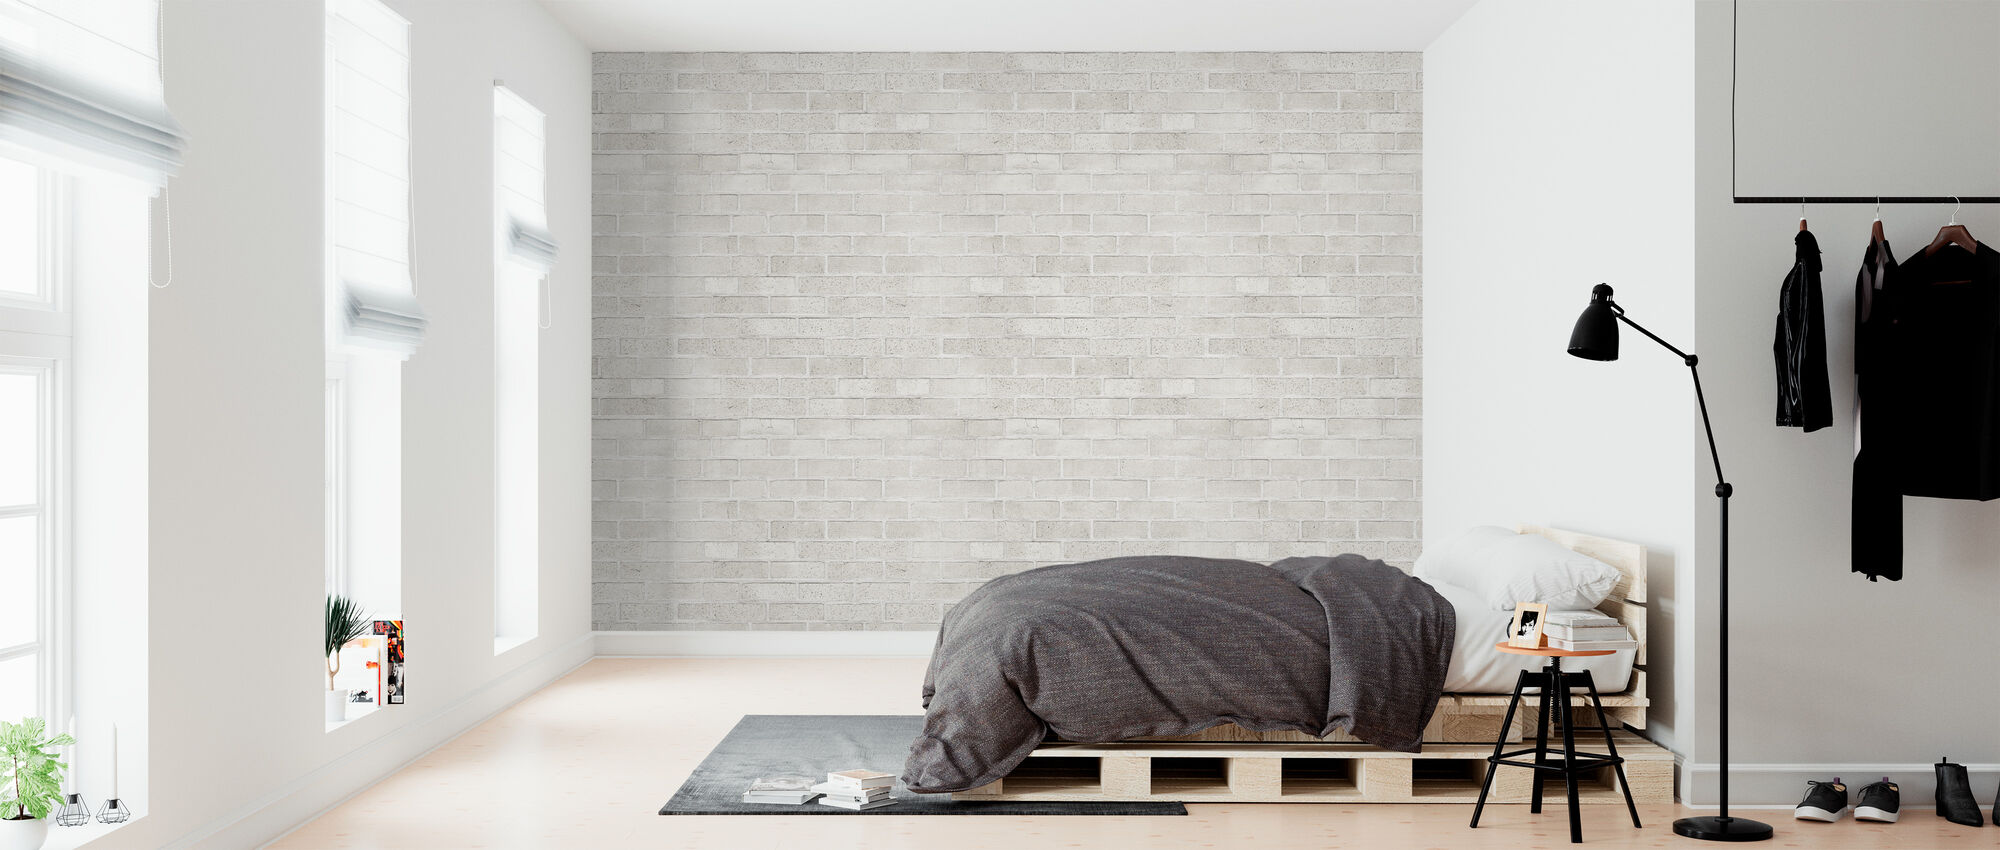 Toned White Brick Wall - Wallpaper - Bedroom